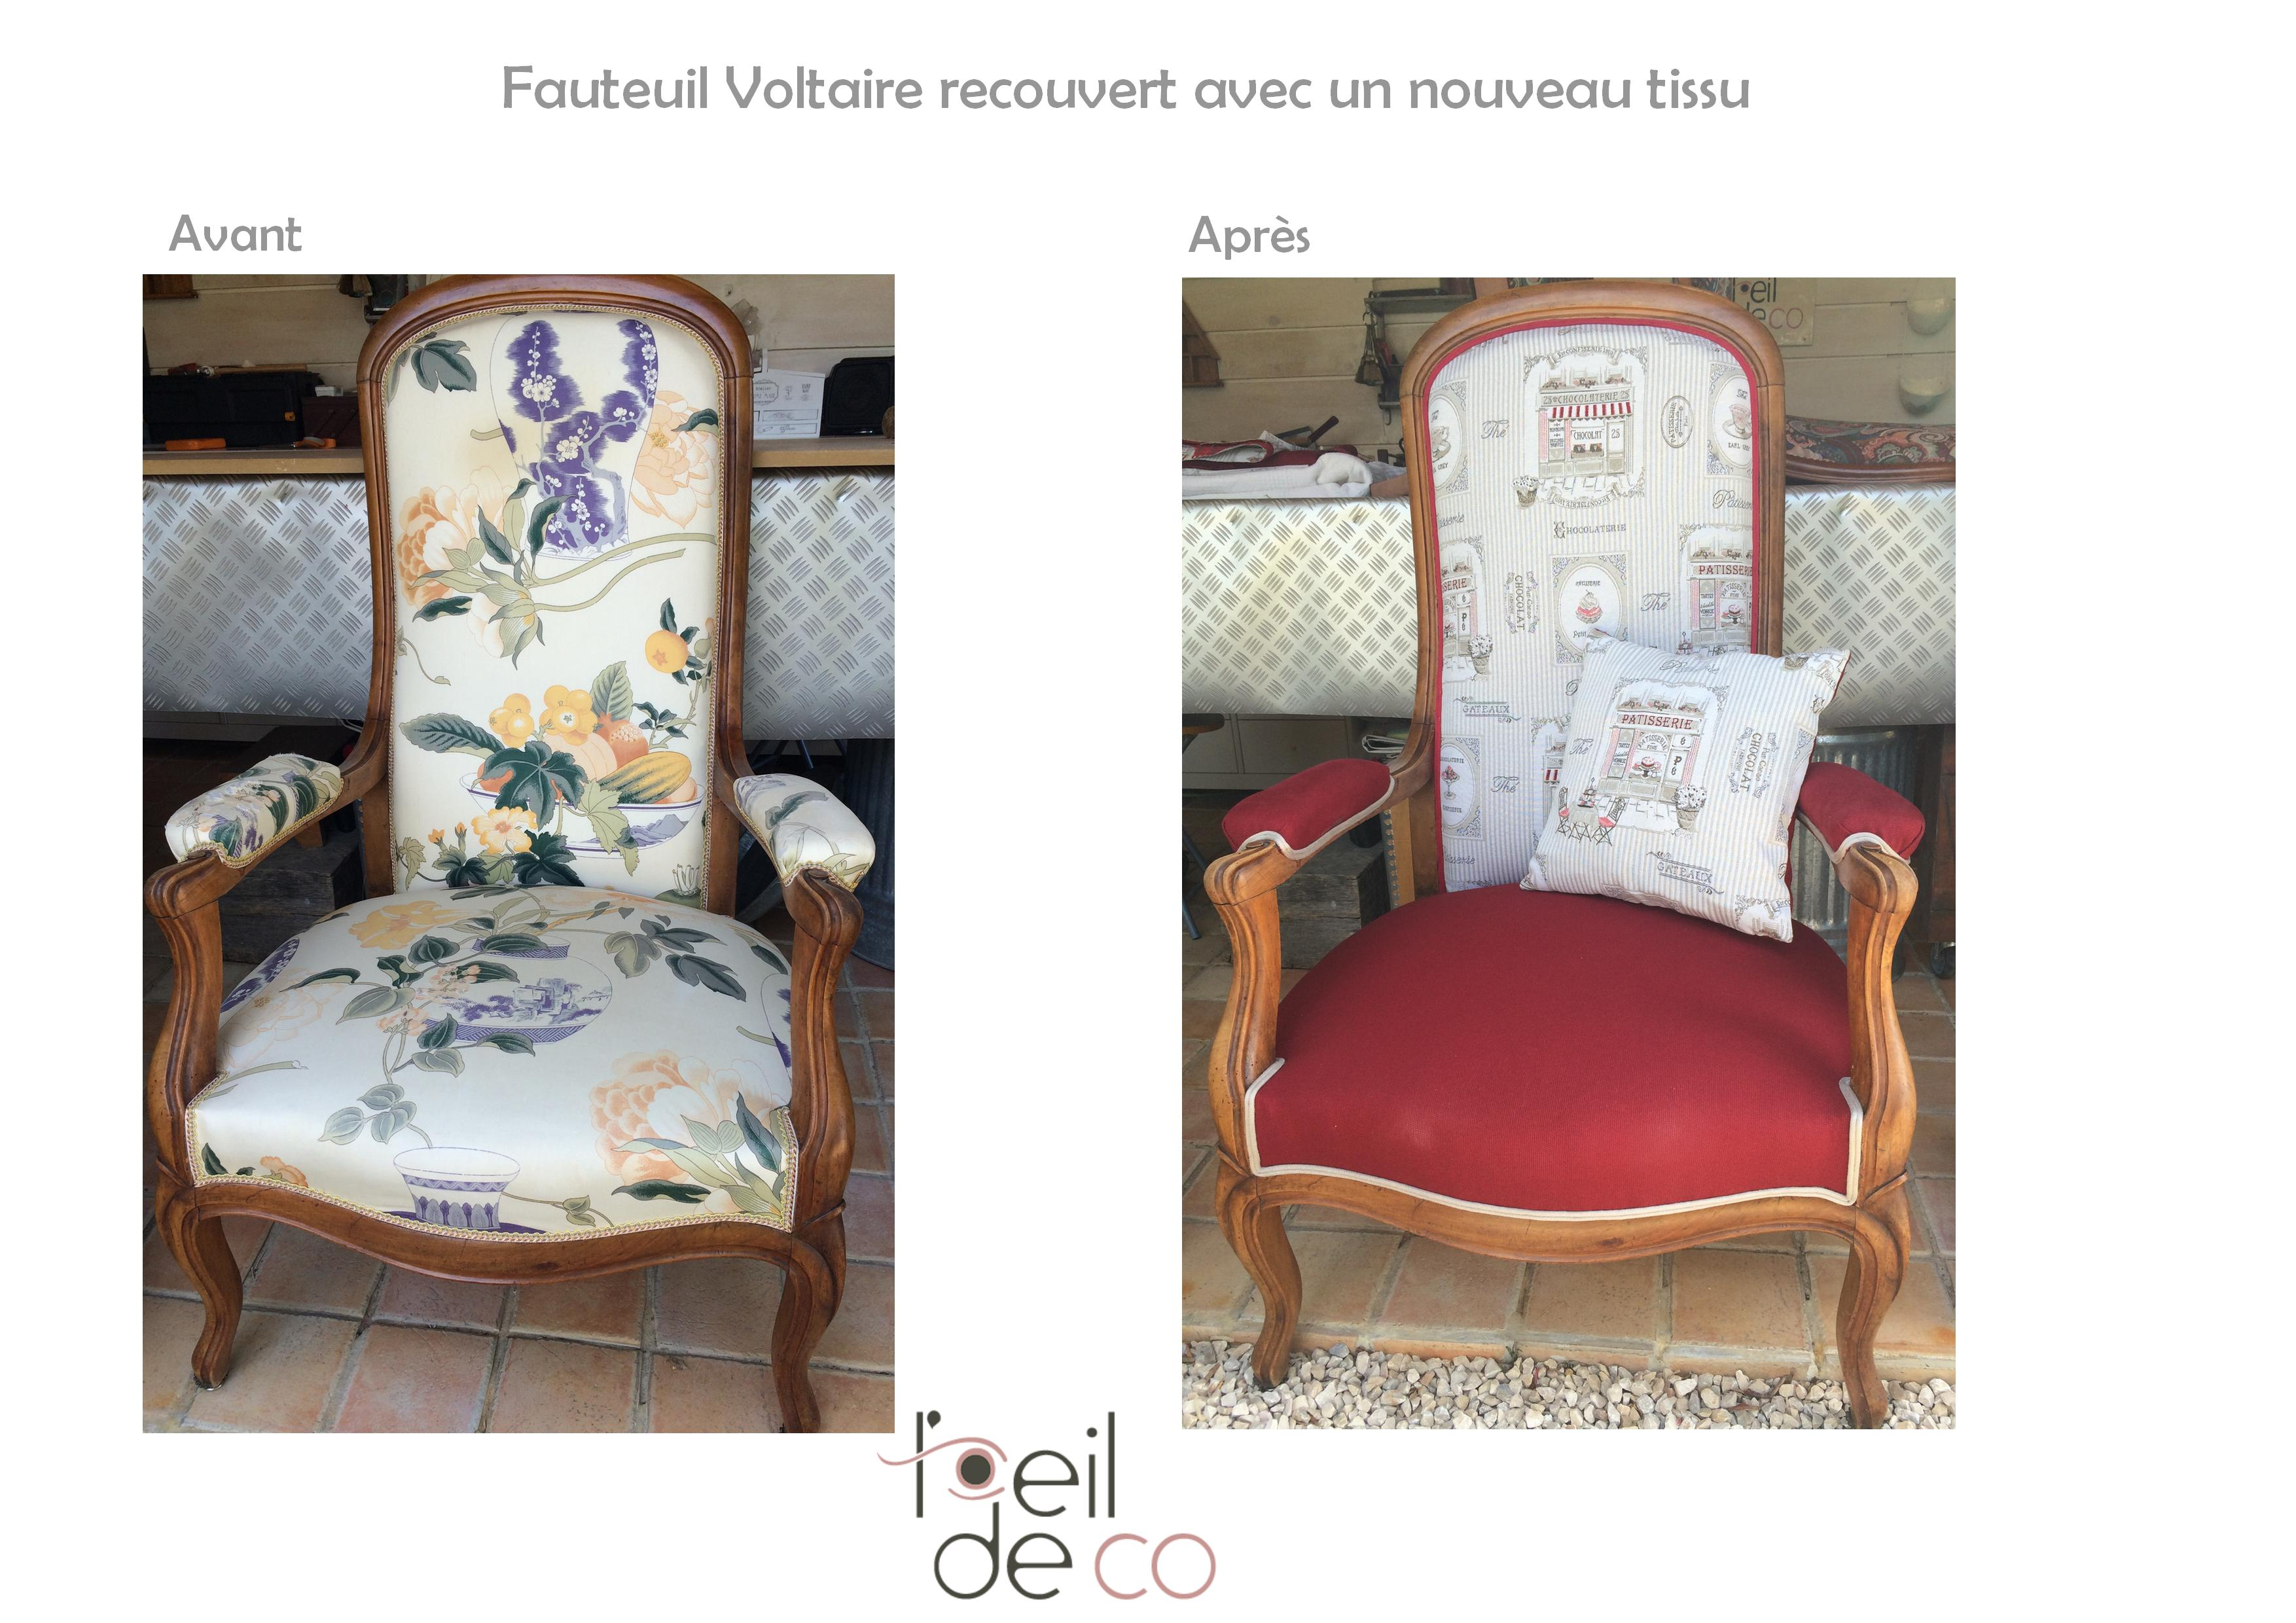 l 39 oeil de co fauteuil voltaire nouveau tissu rouge et beige l 39 oeil de co. Black Bedroom Furniture Sets. Home Design Ideas